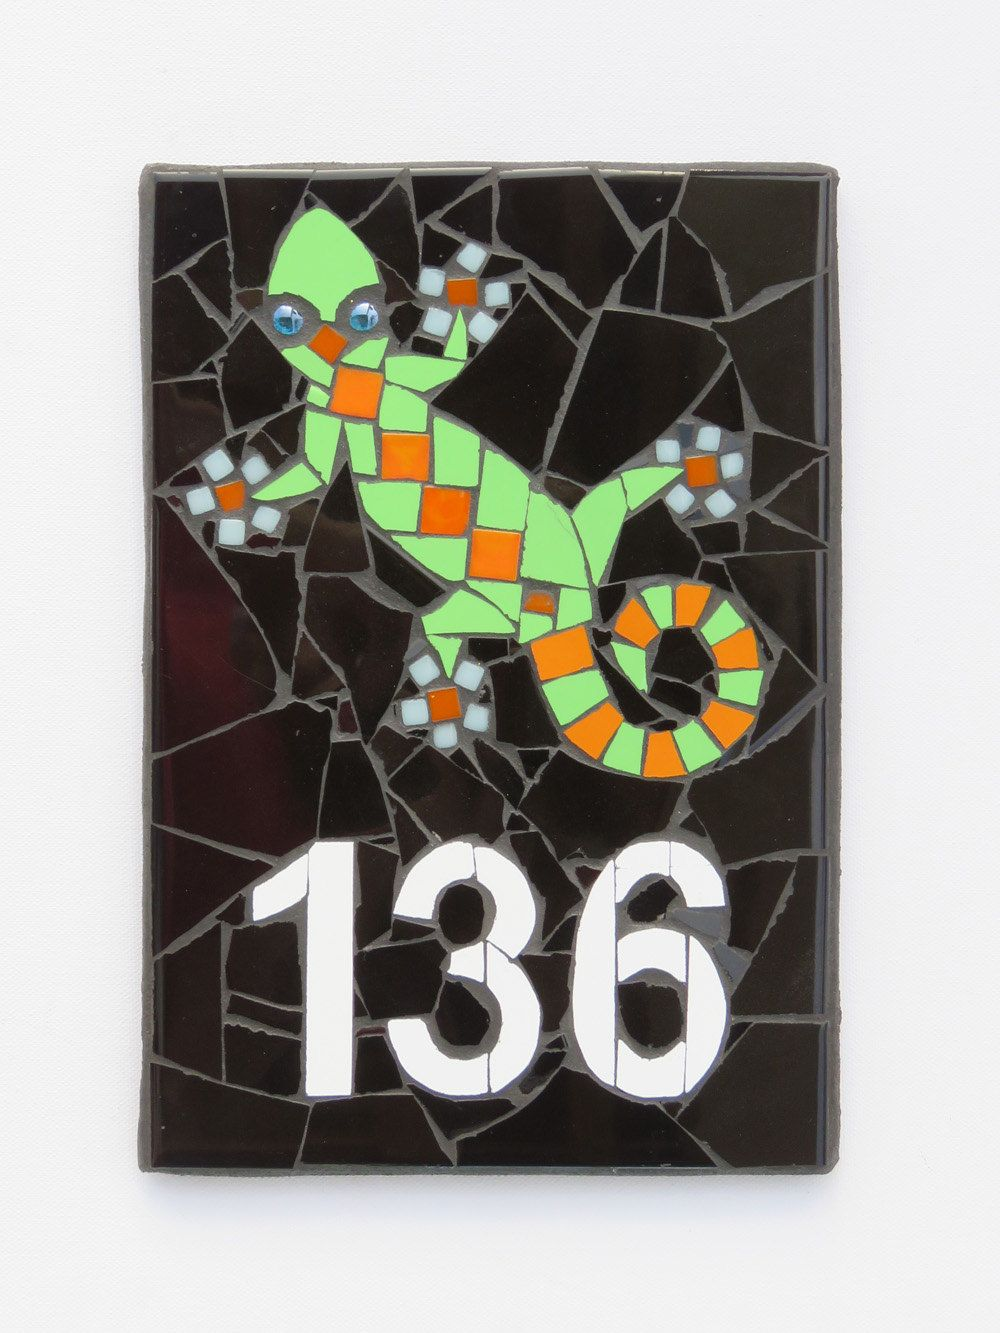 Outdoor house number mosaic house number ceramic tile house number outdoor house number mosaic house number ceramic tile house number plaque beach house number mosaic mailbox dailygadgetfo Image collections